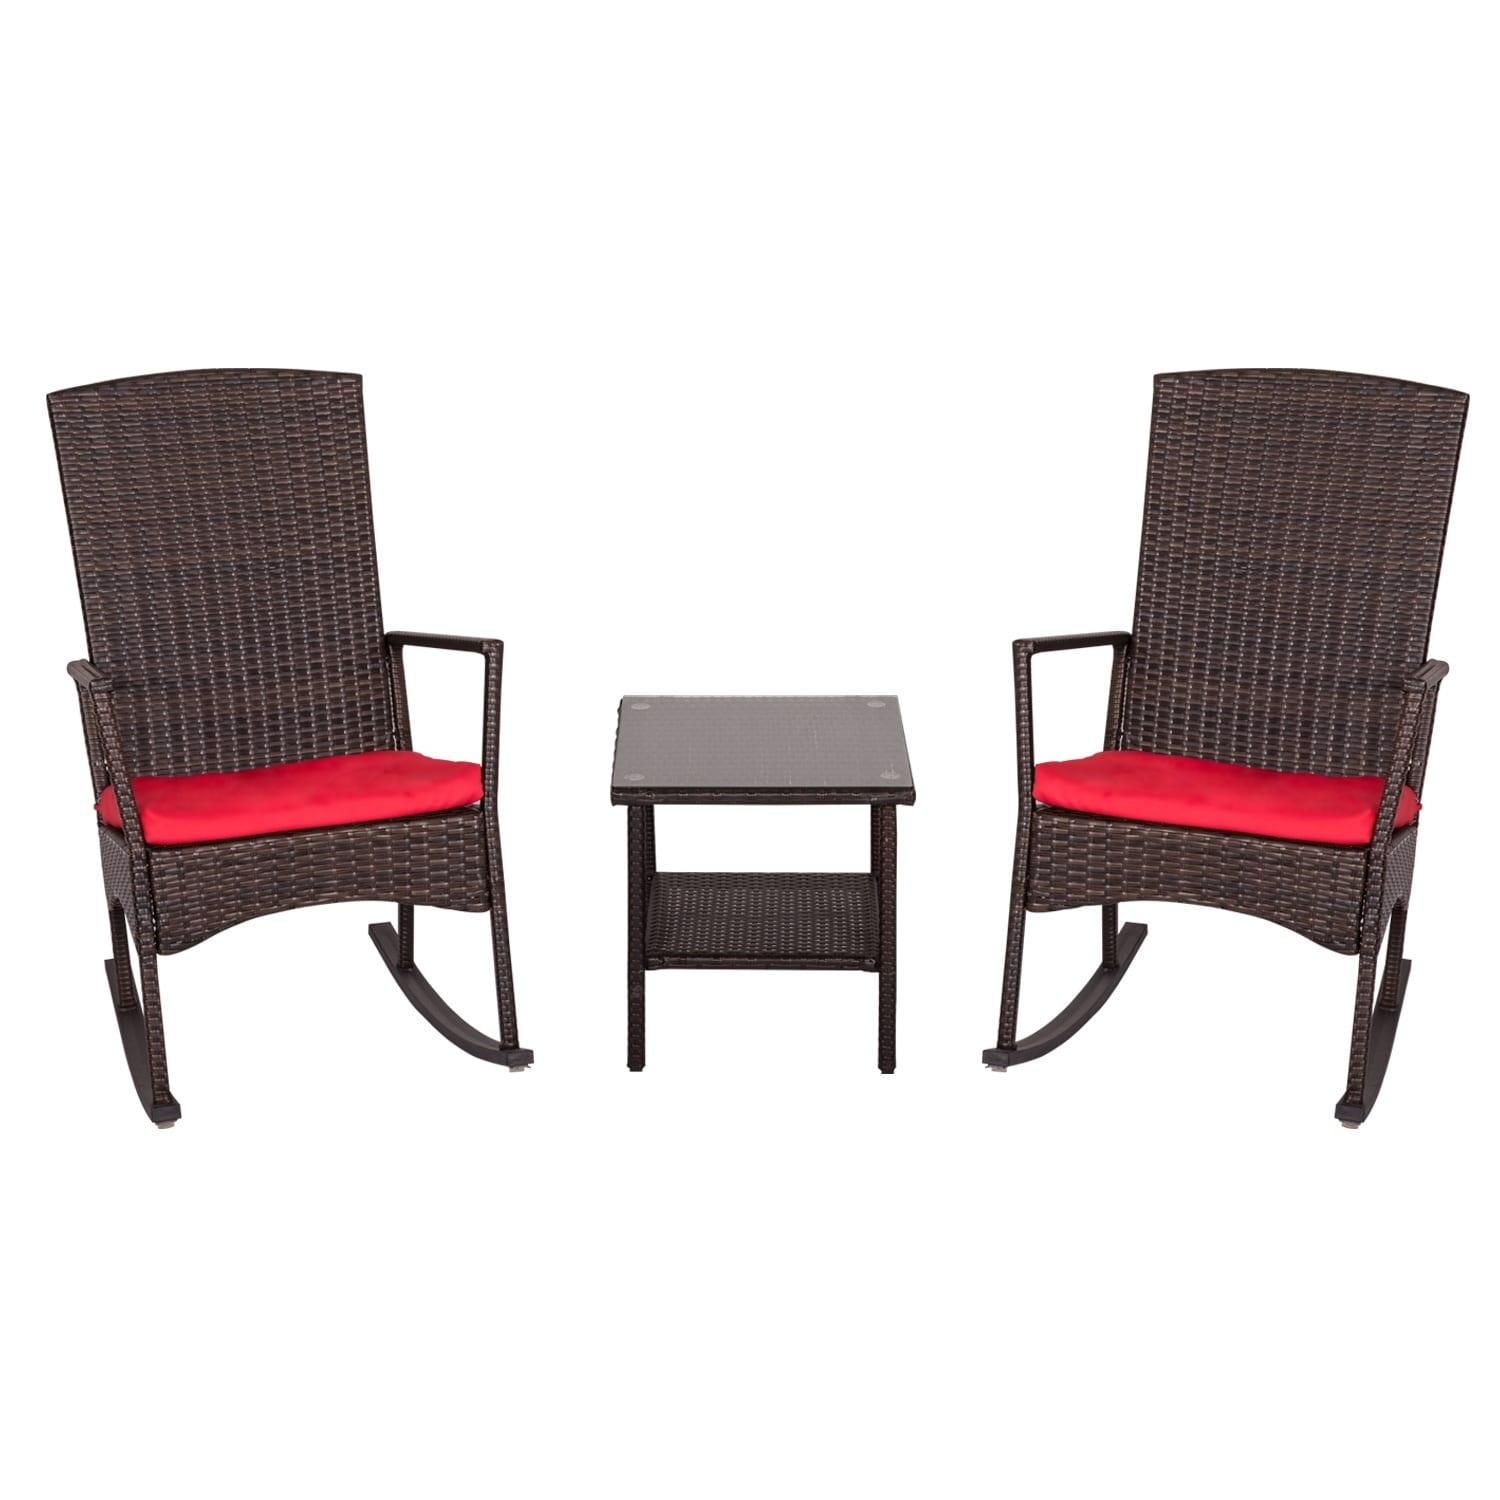 Kinbor 3 Piece Wicker Rocking Chair Bistro Set Patio Chat All Weather Outdoor Furniture W Cushions Table Free Shipping Today